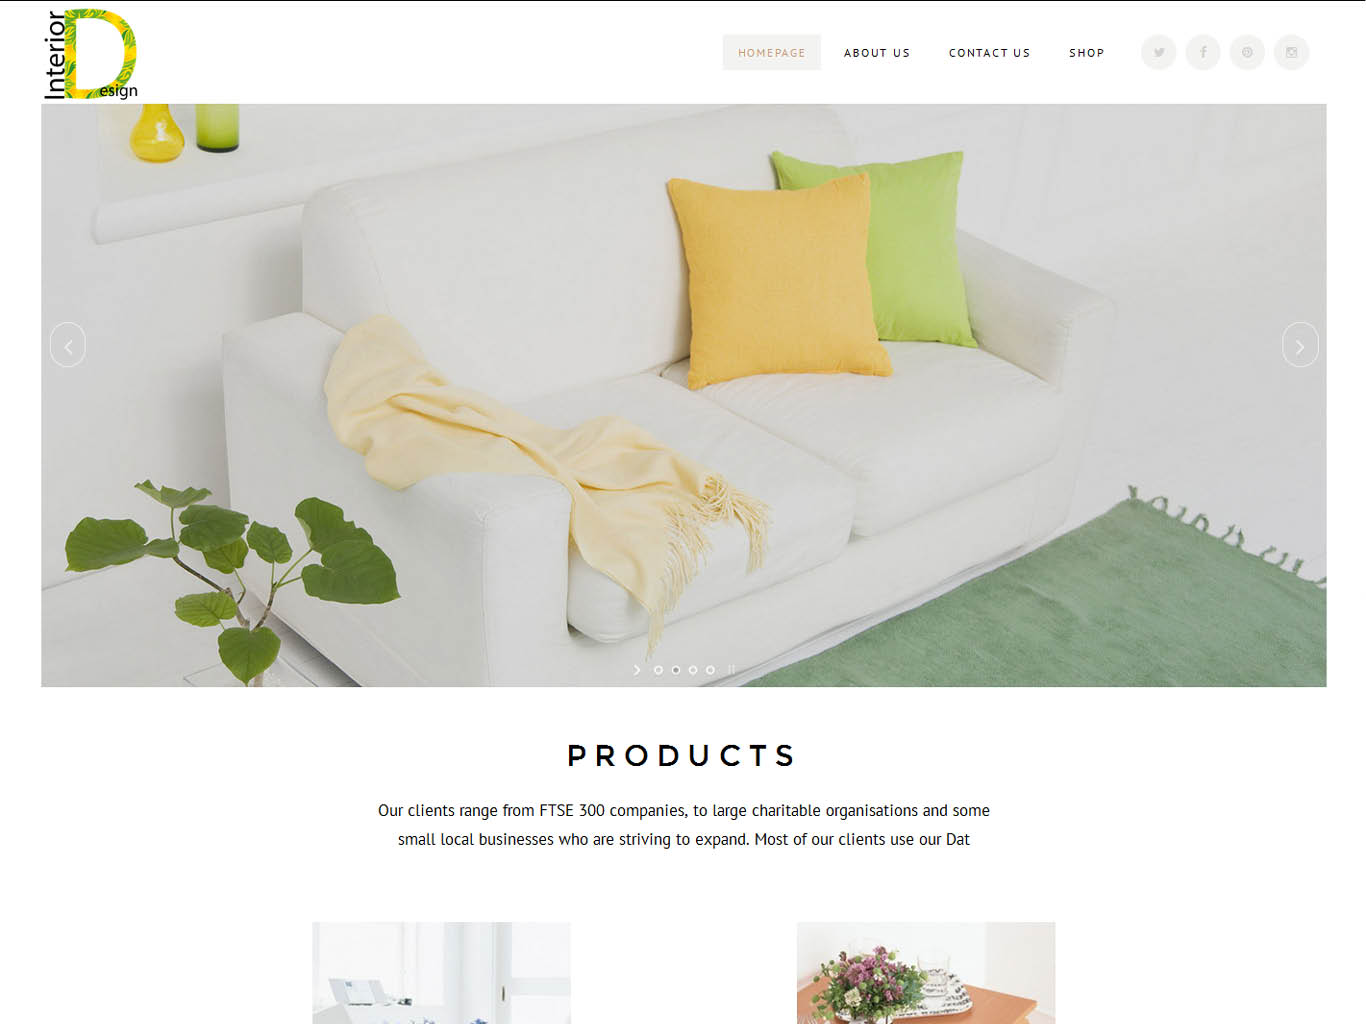 interior-ecommerce web design